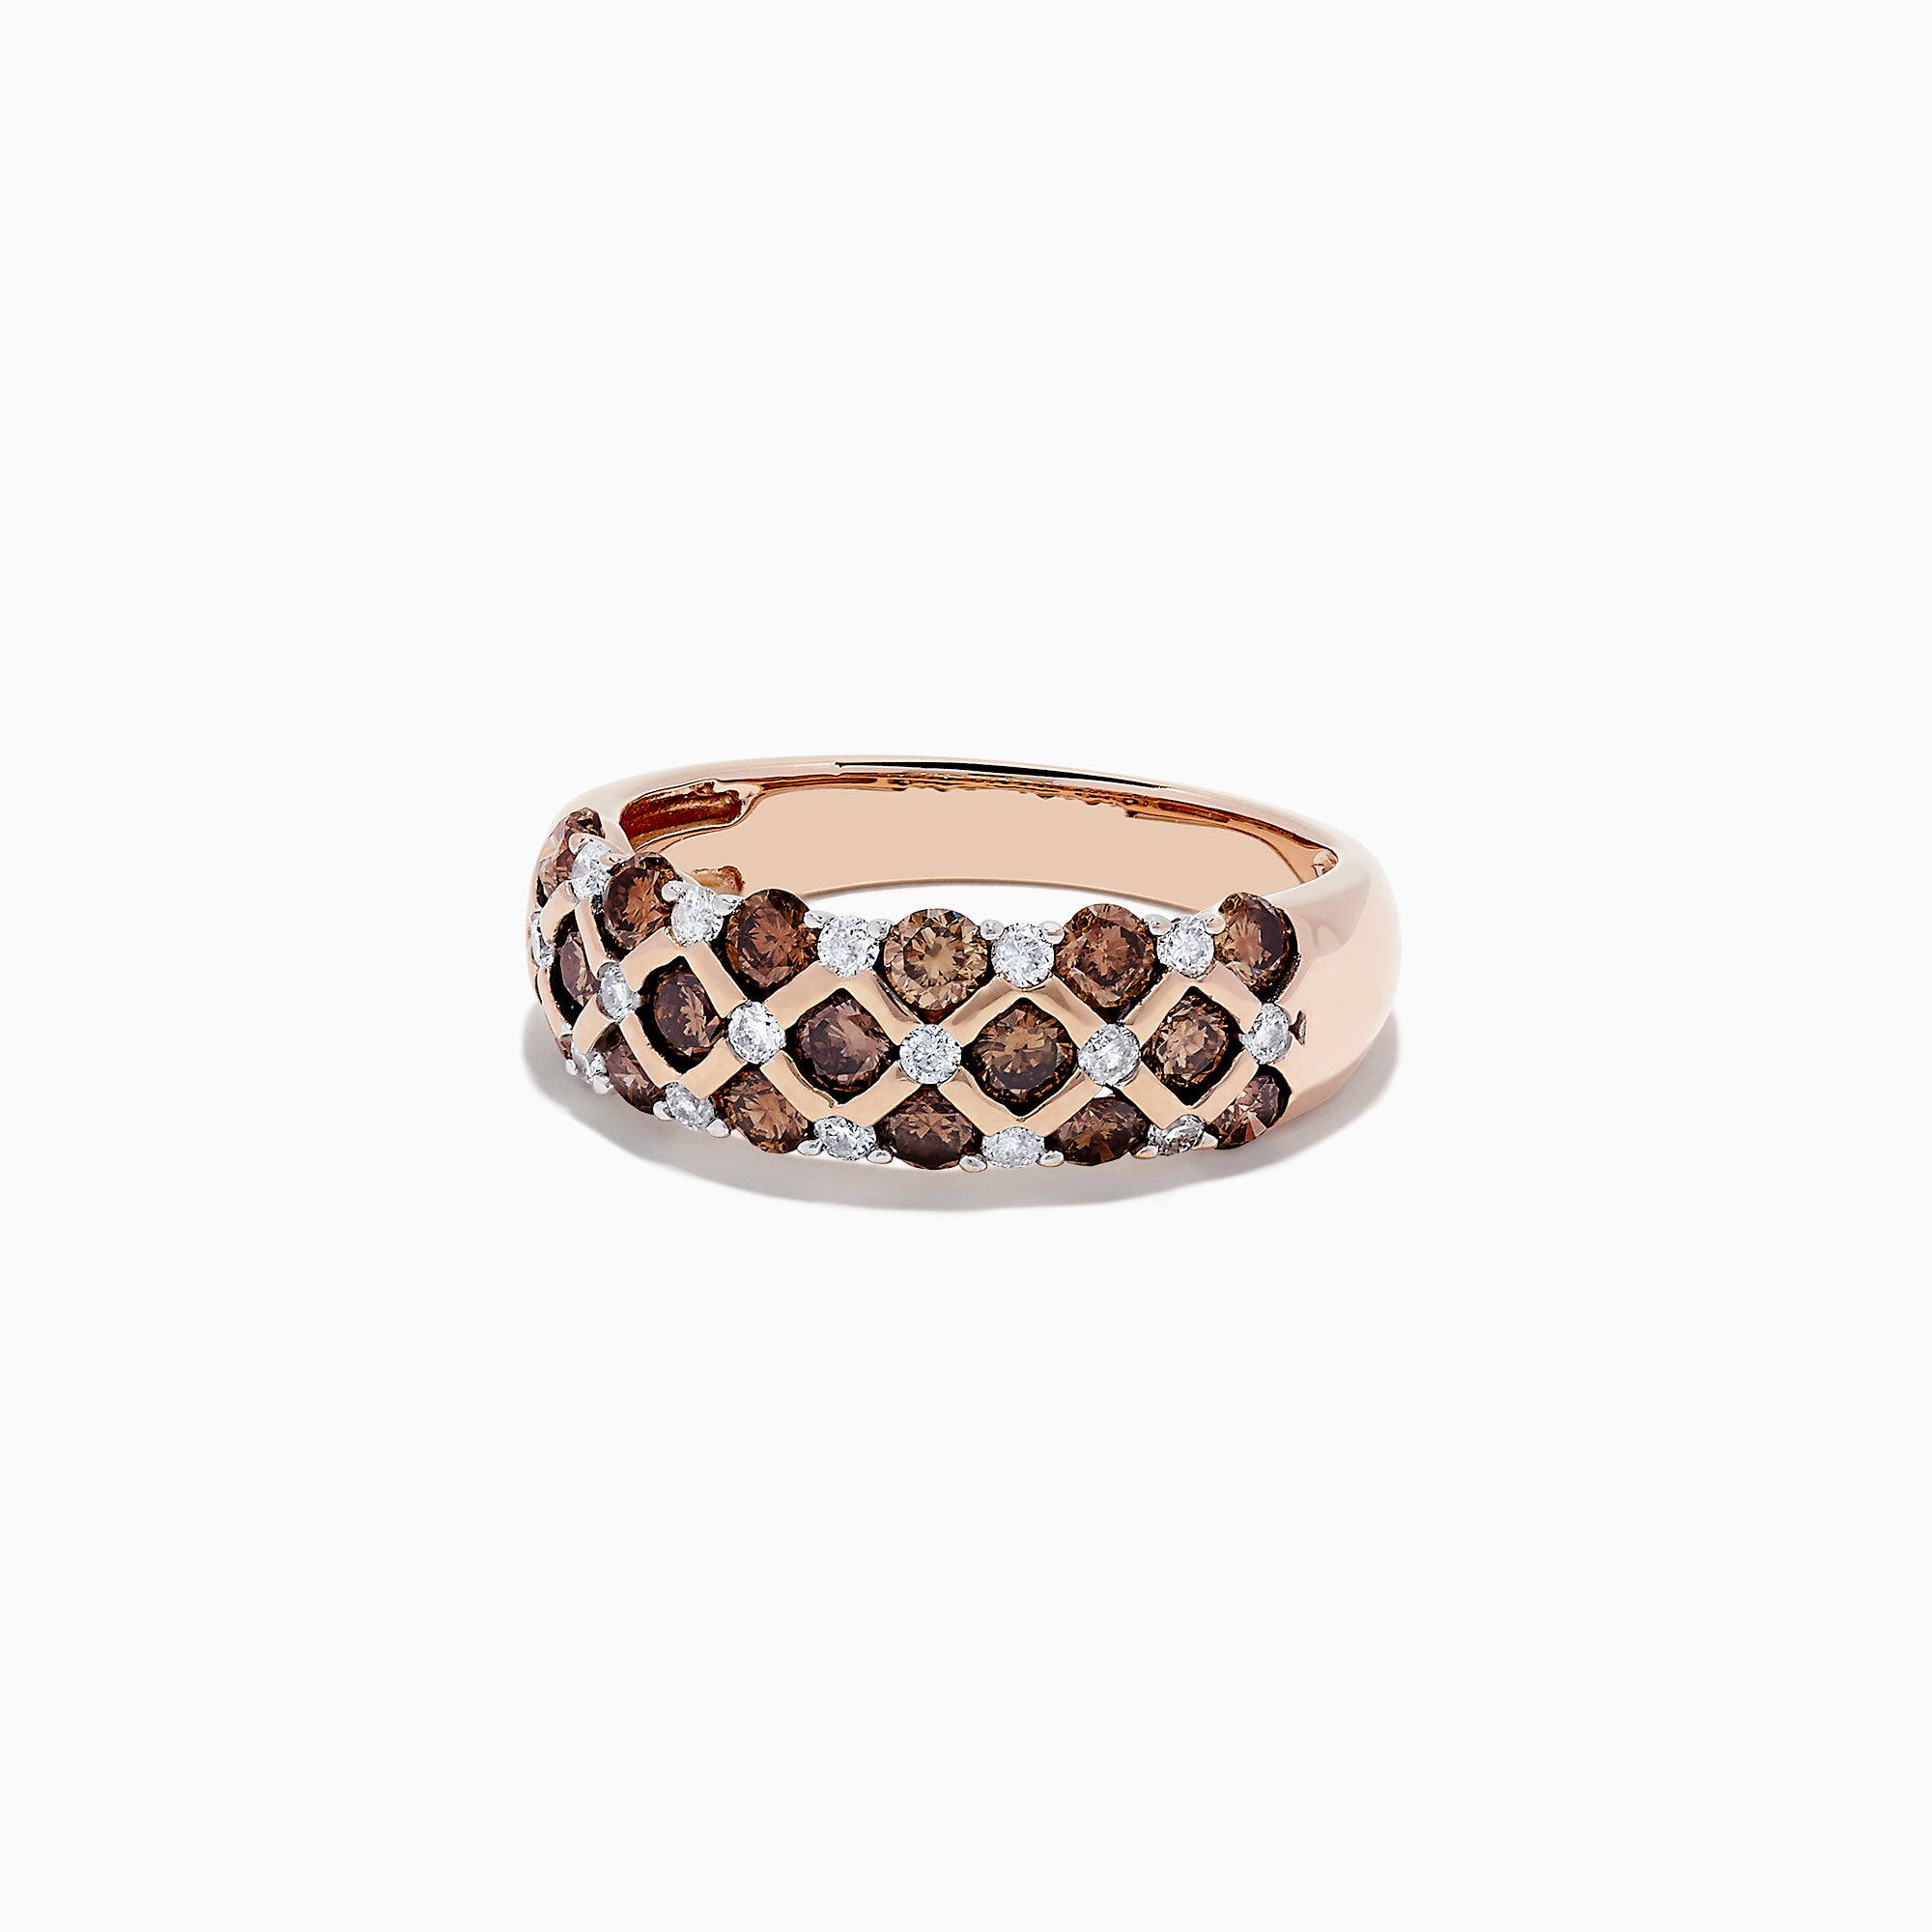 14K Rose Gold Cognac and White Diamond Ring, 0.55 TCW